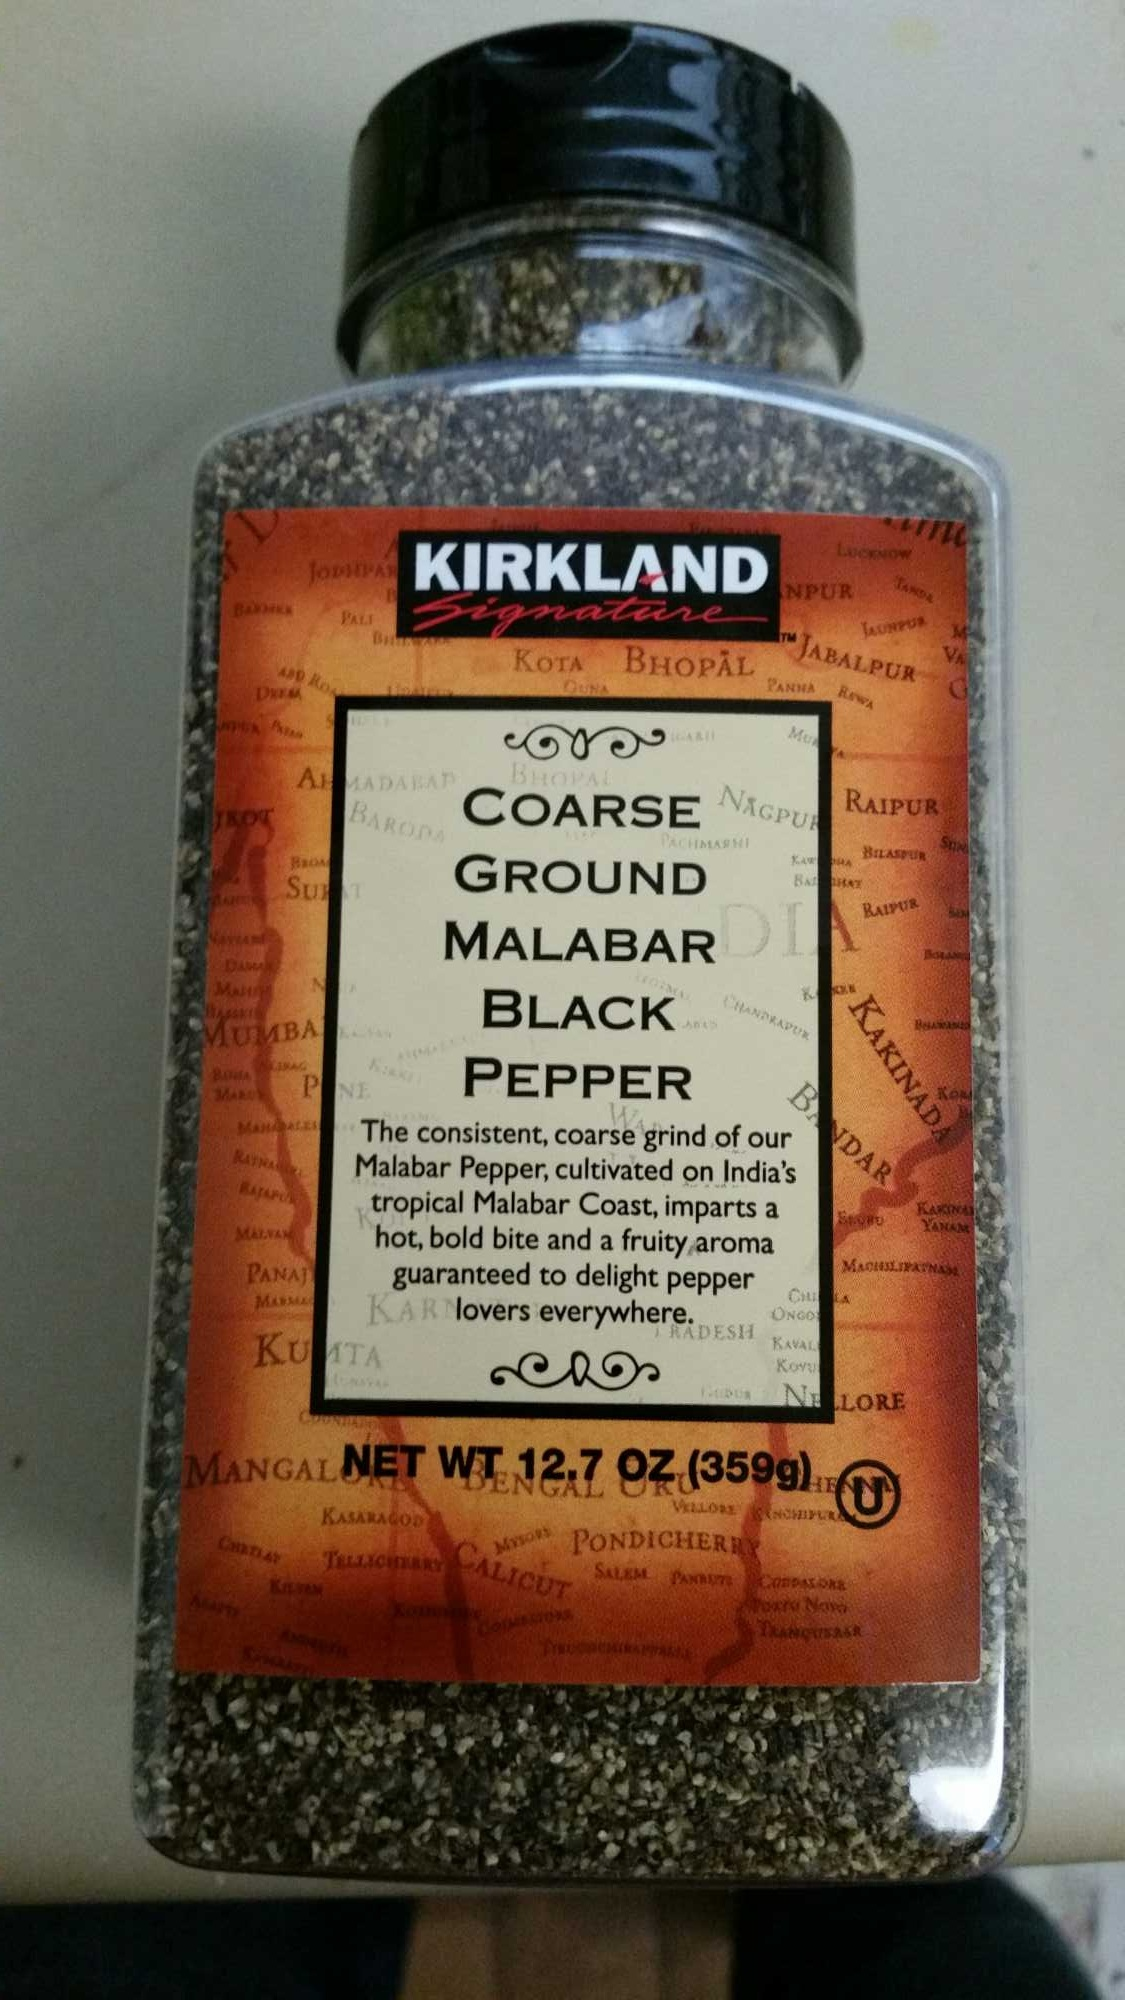 Coarse Ground Malabar Black Pepper - Product